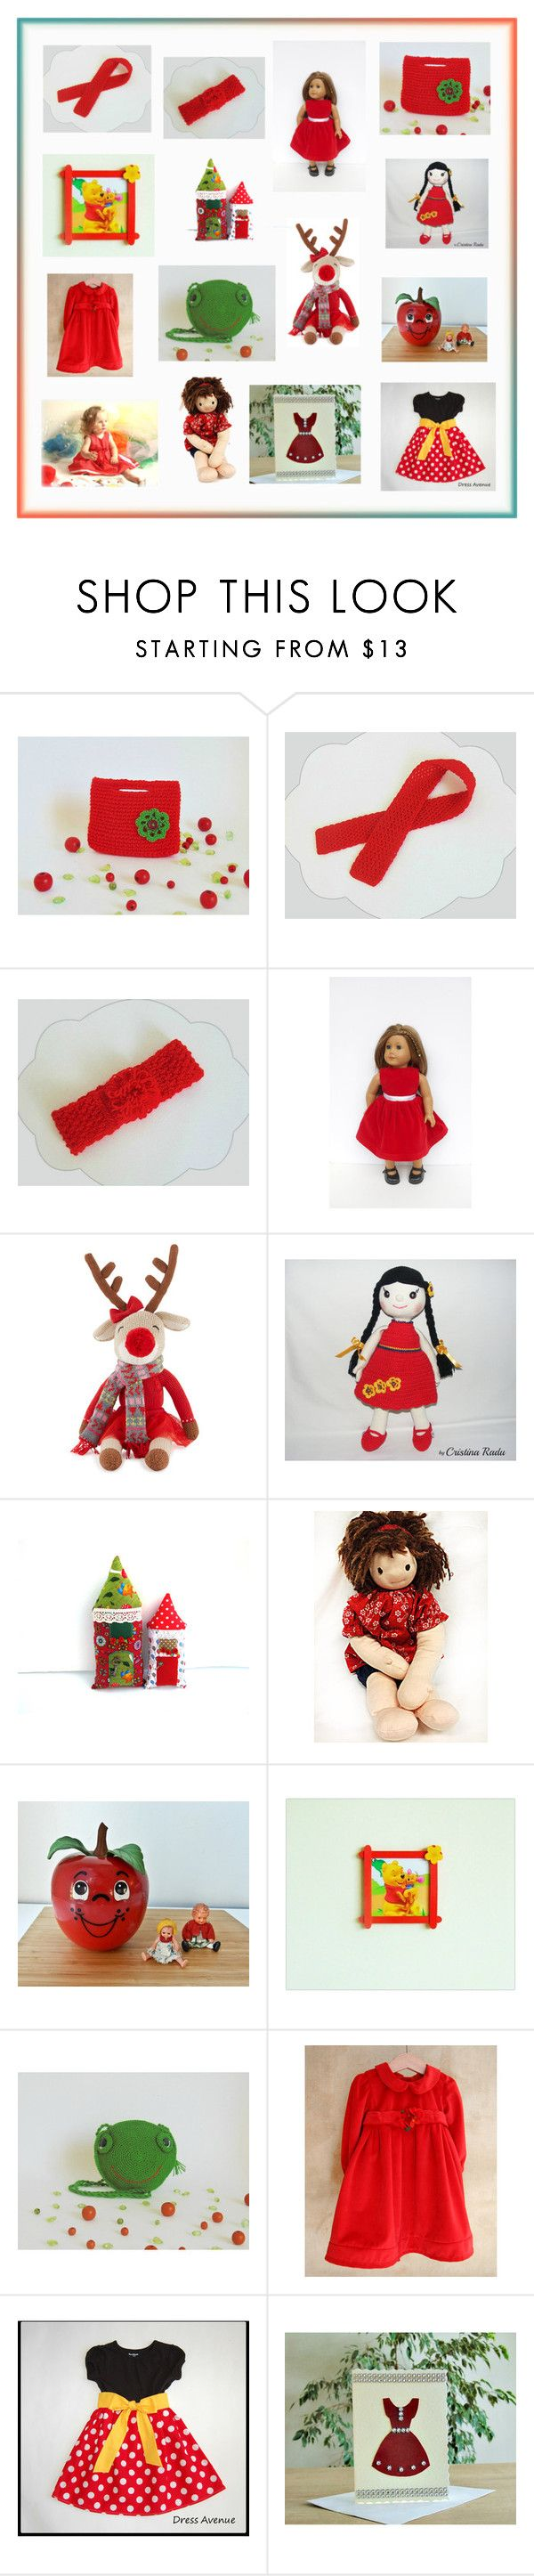 """""""Etsy gifts for Toddler Girls"""" by styledonna on Polyvore featuring Zubels, Fisher Price, Disney, outfit, etsy i outfits"""